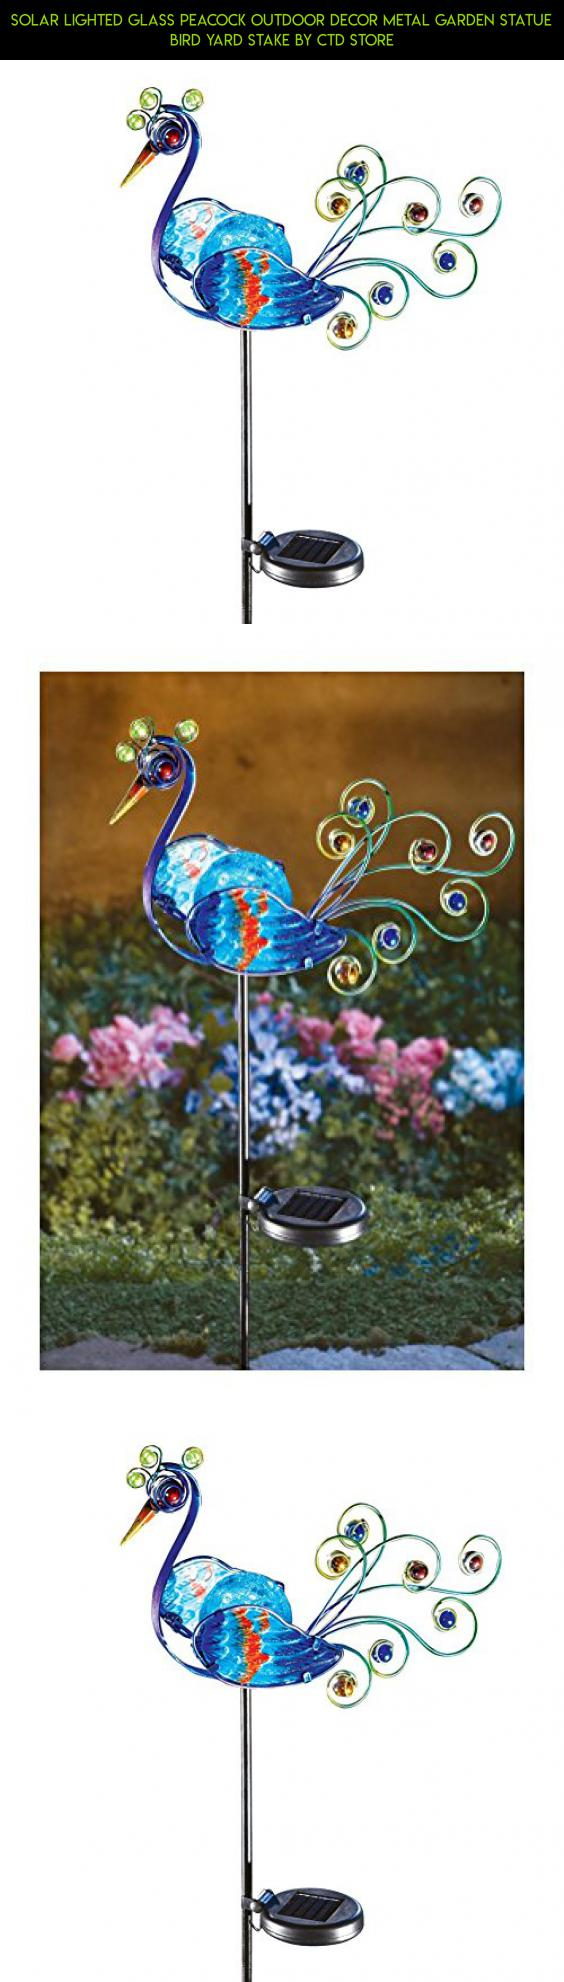 Solar Lighted Glass Peacock Outdoor Decor Metal Garden Statue Bird Yard  Stake By CTD Store #